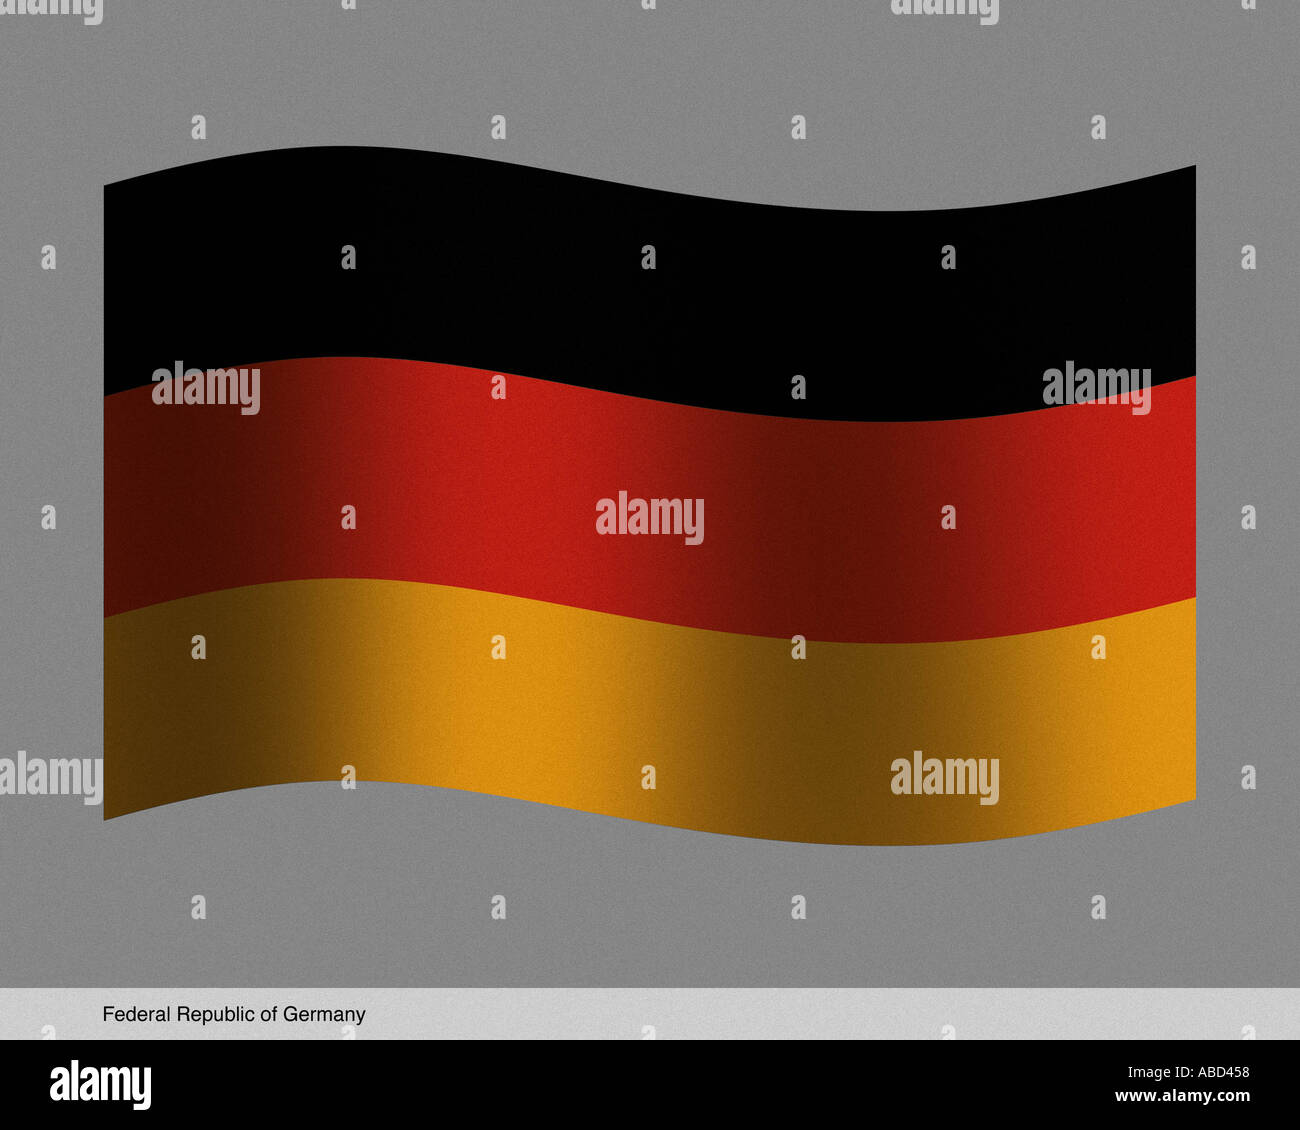 Federal Republic of Germany - Stock Image